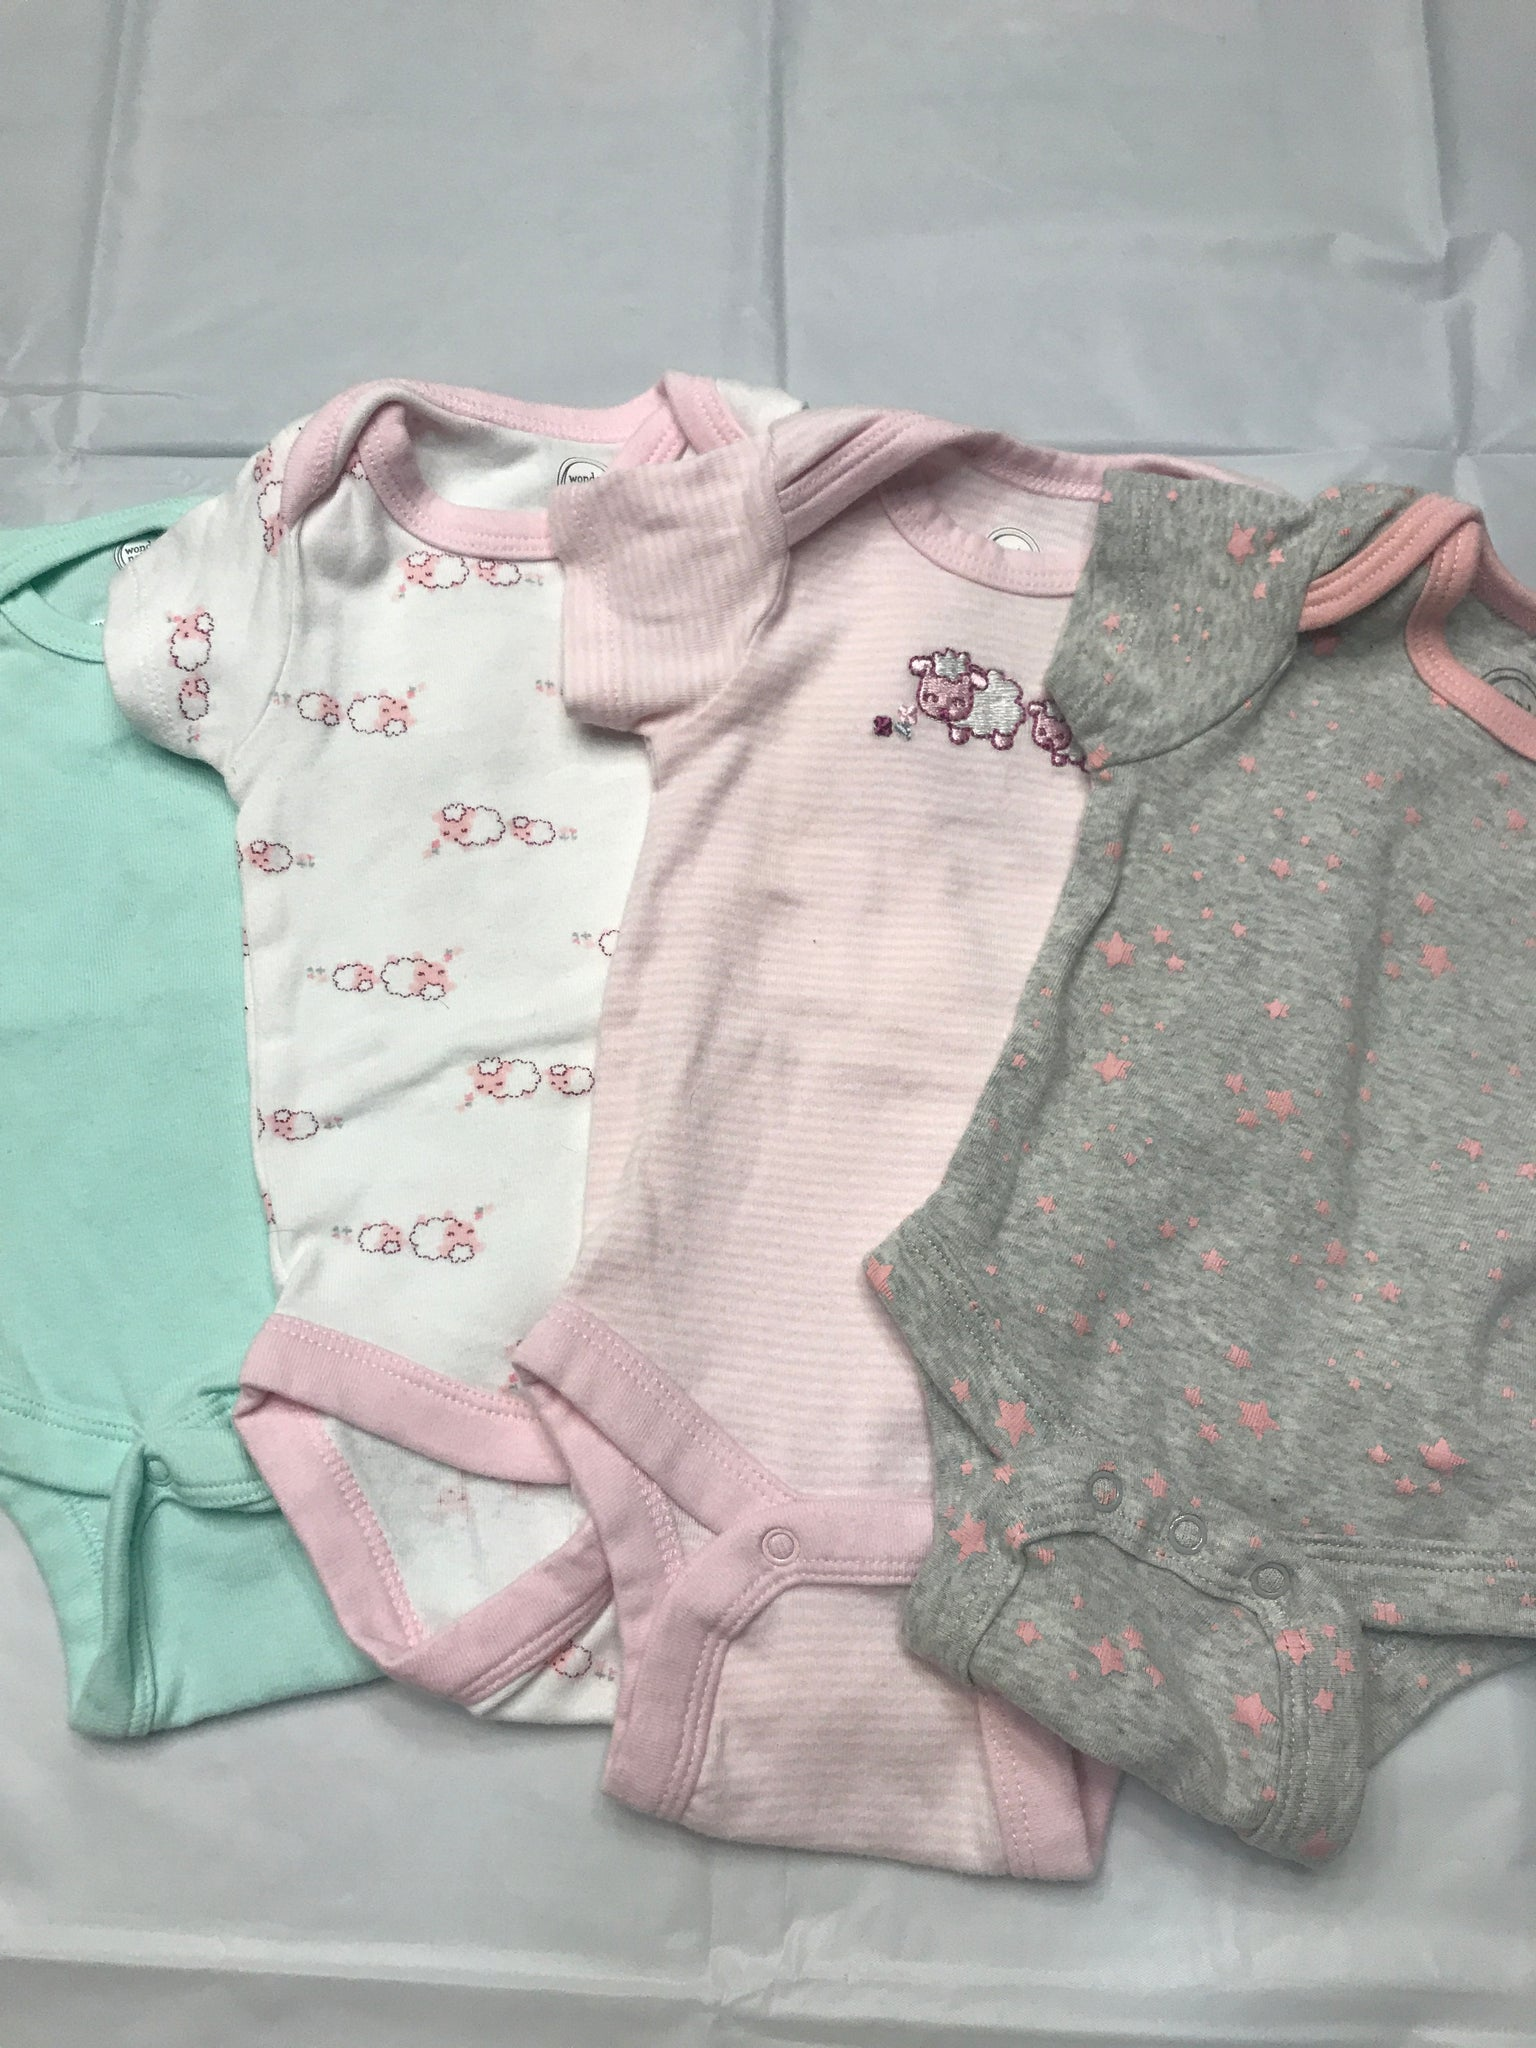 NB months Onsies 4 pack Wonder Nation